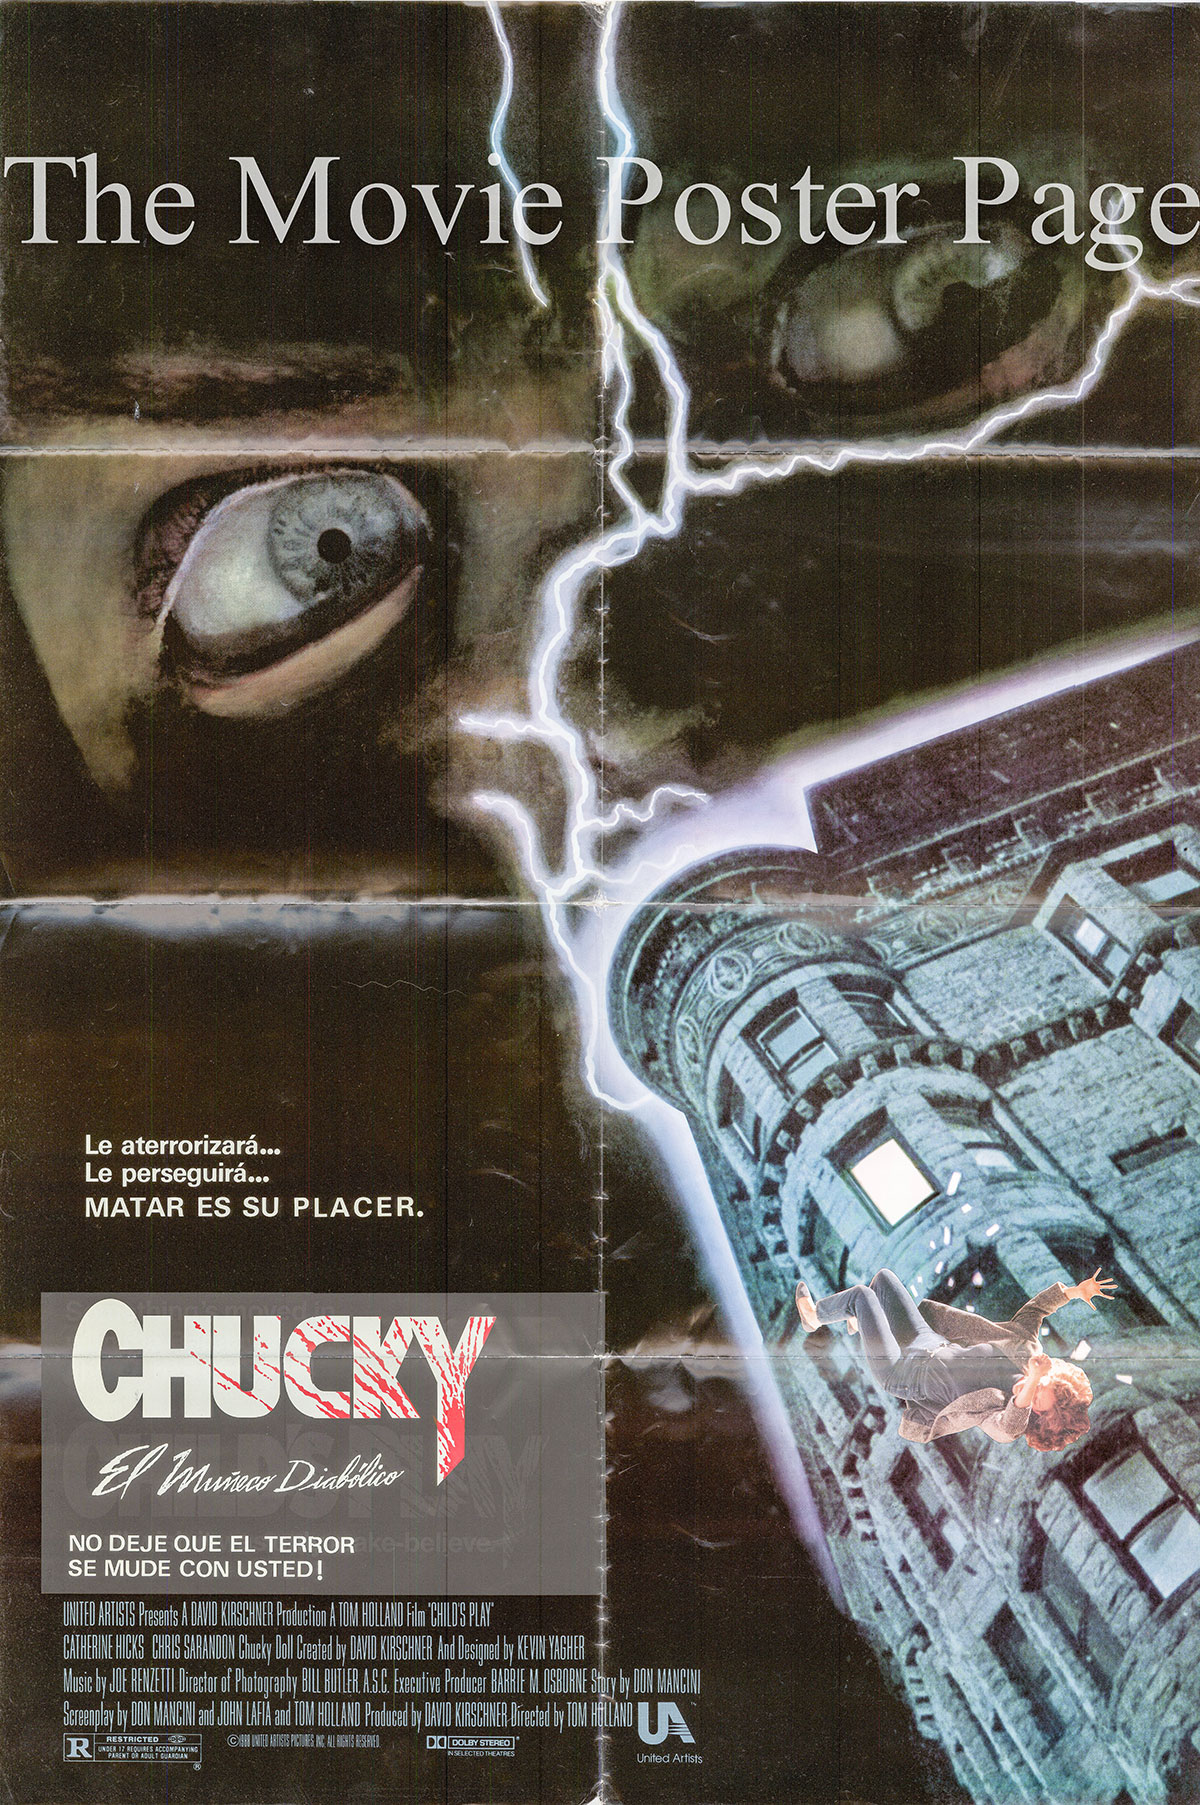 Pictured is a Spanish one-sheet poster for the 1988 Tom Holland Film Chucky starring Catherine Hicks.